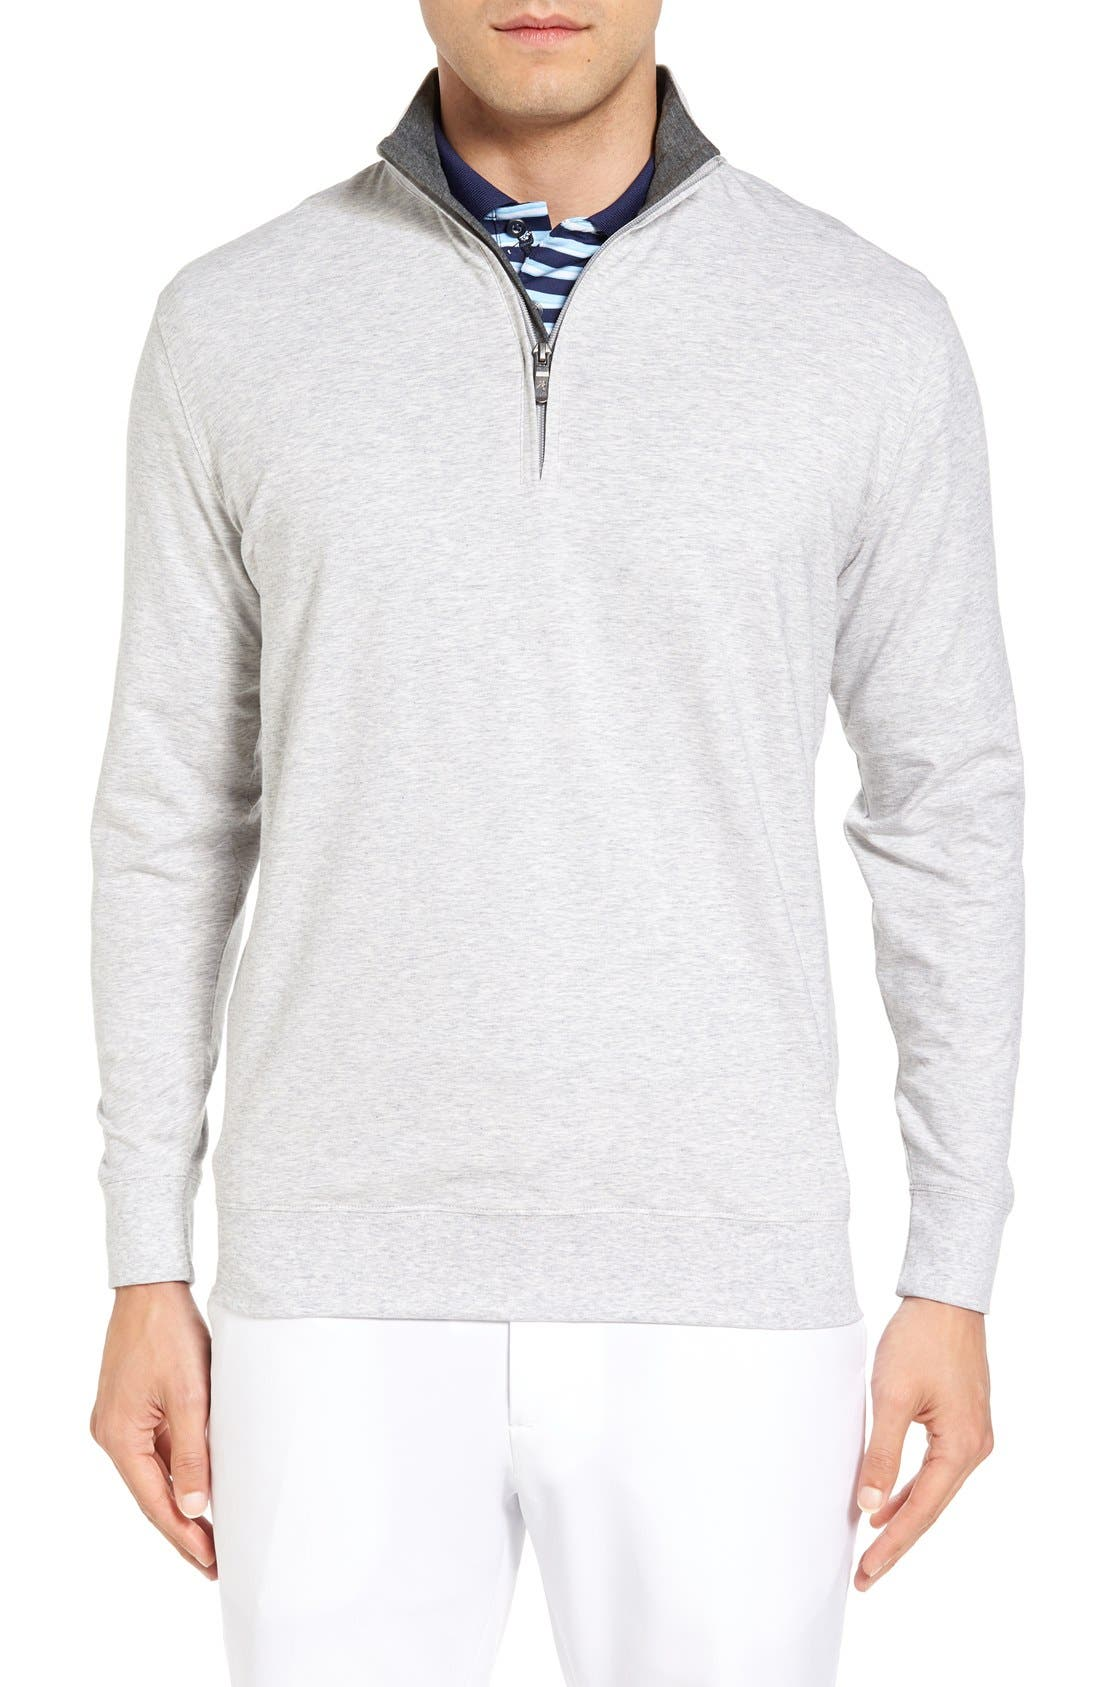 Main Image - Bobby Jones PTO Liquid Stretch Quarter Zip Pullover